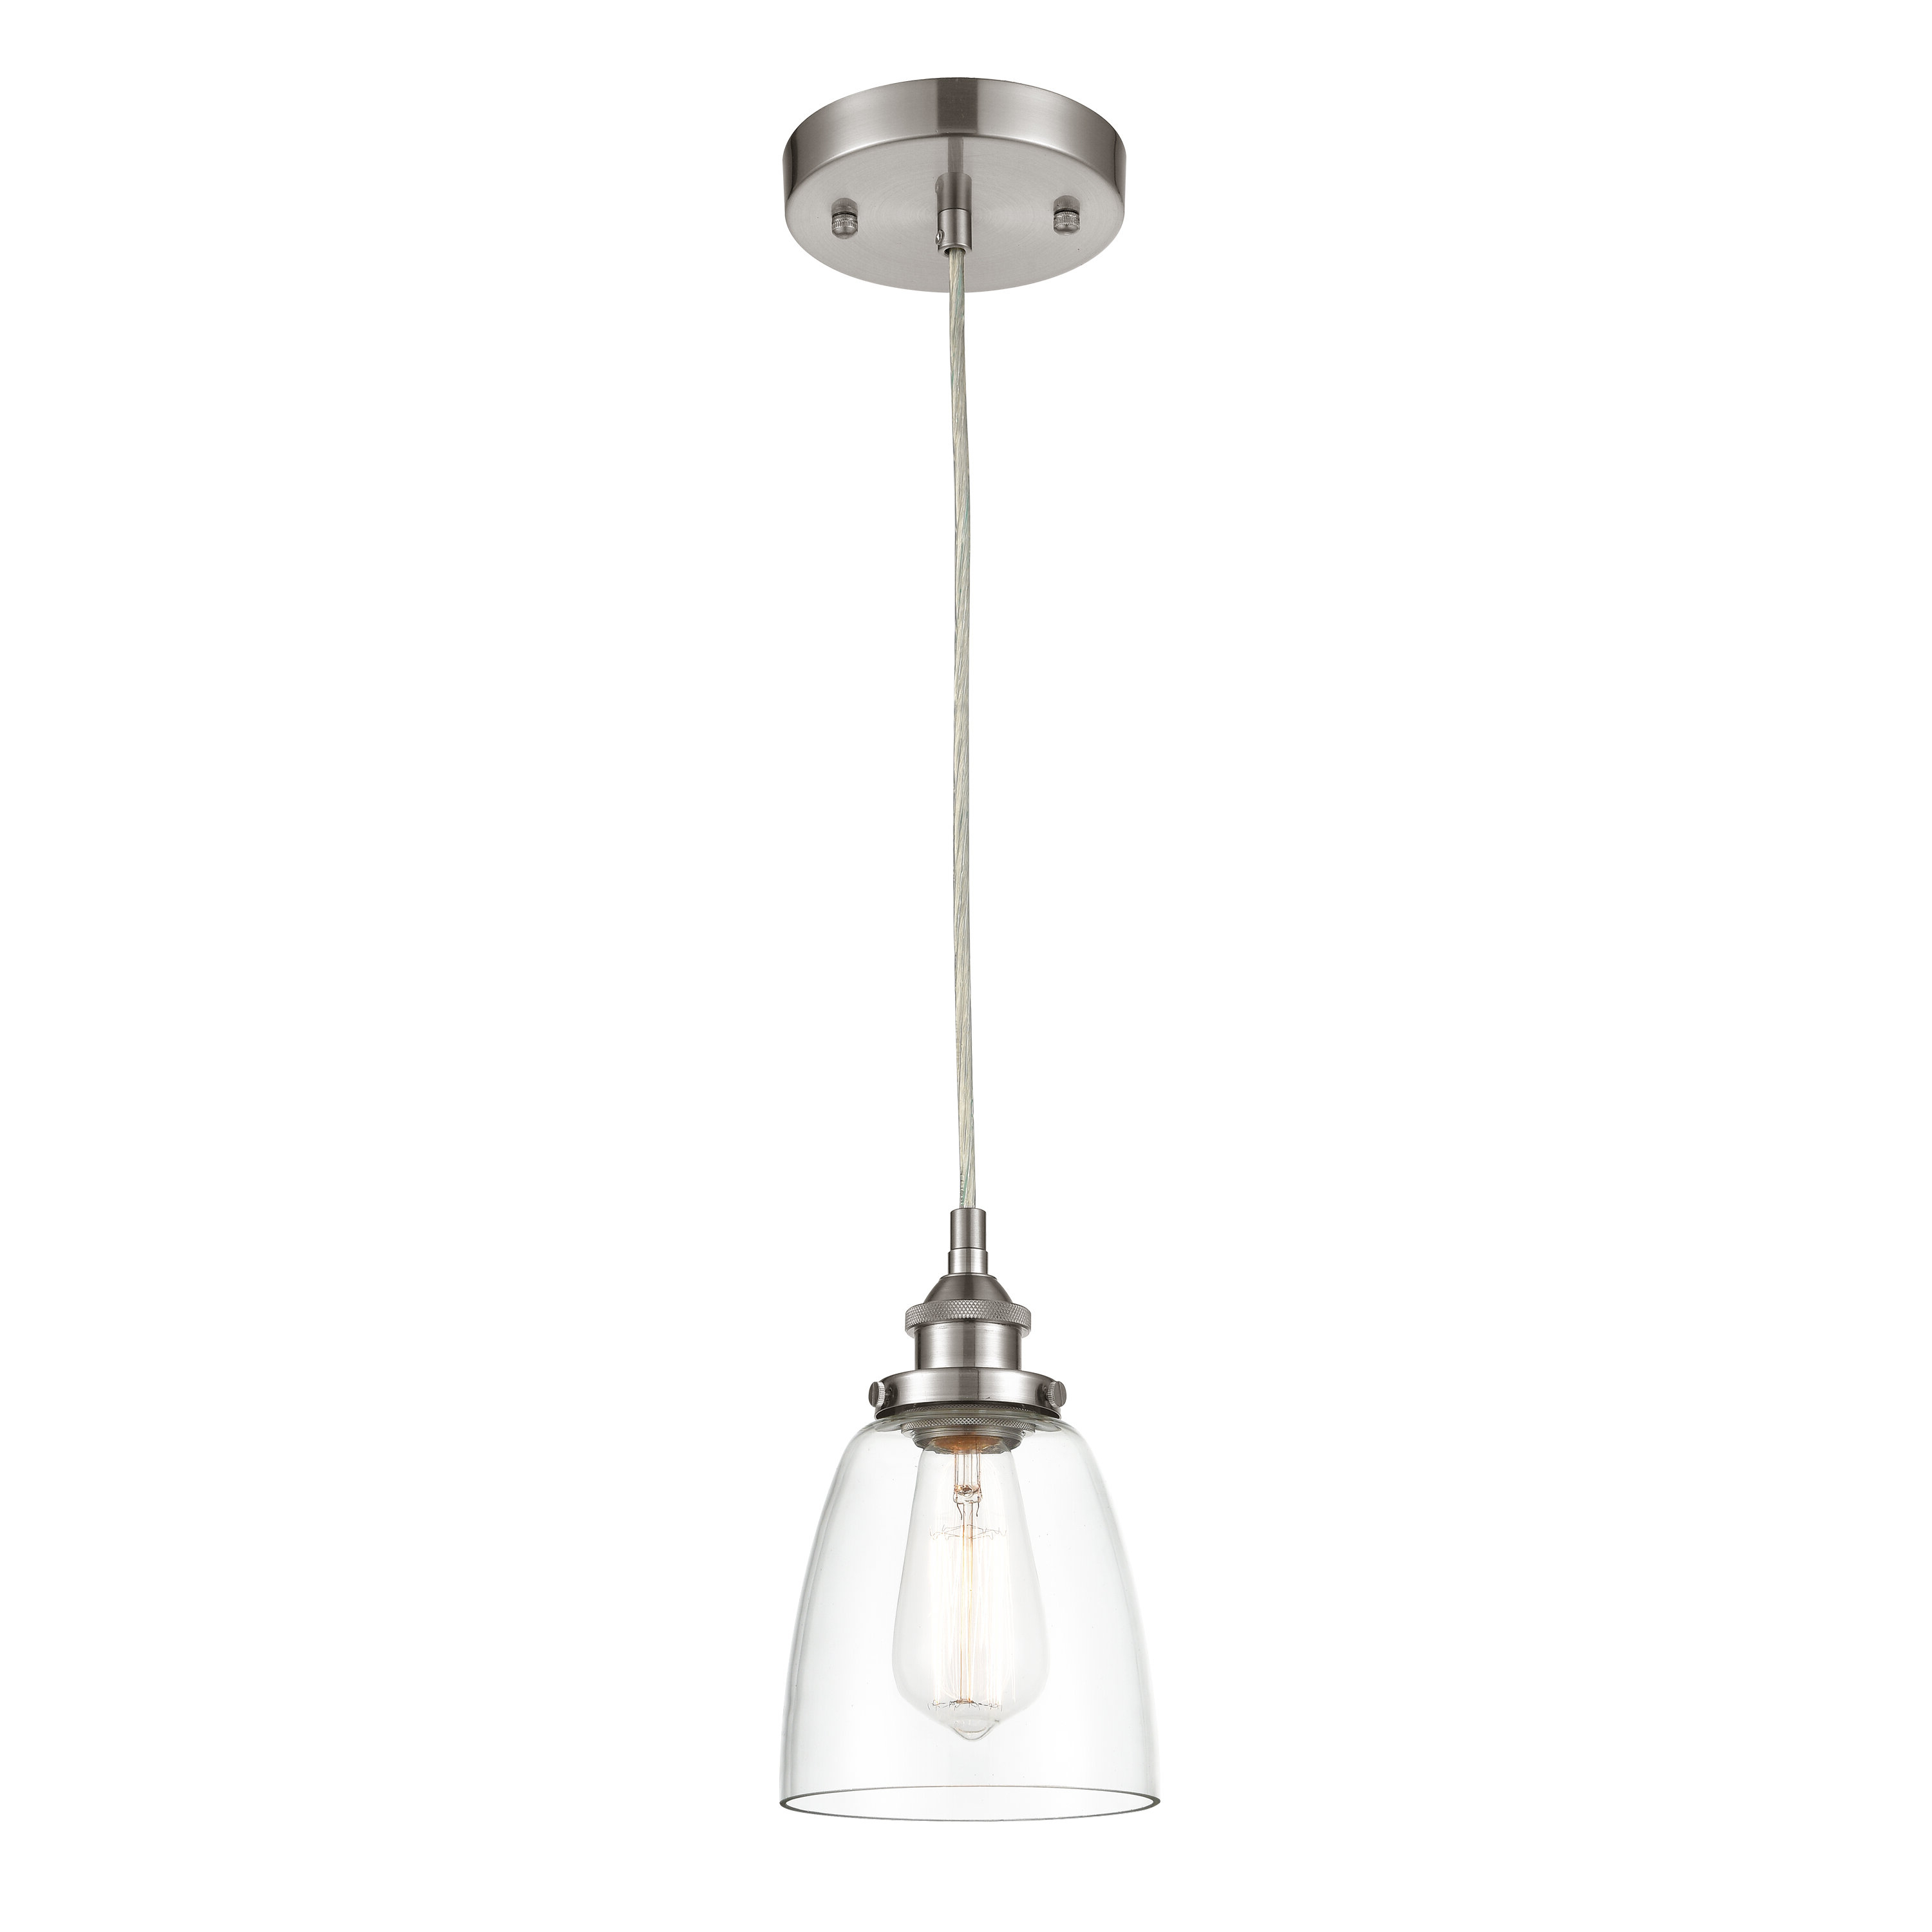 Ryker 1 Light Single Dome Pendants Intended For Latest Iron Gate 1 Light Single Bell Pendant (View 17 of 25)